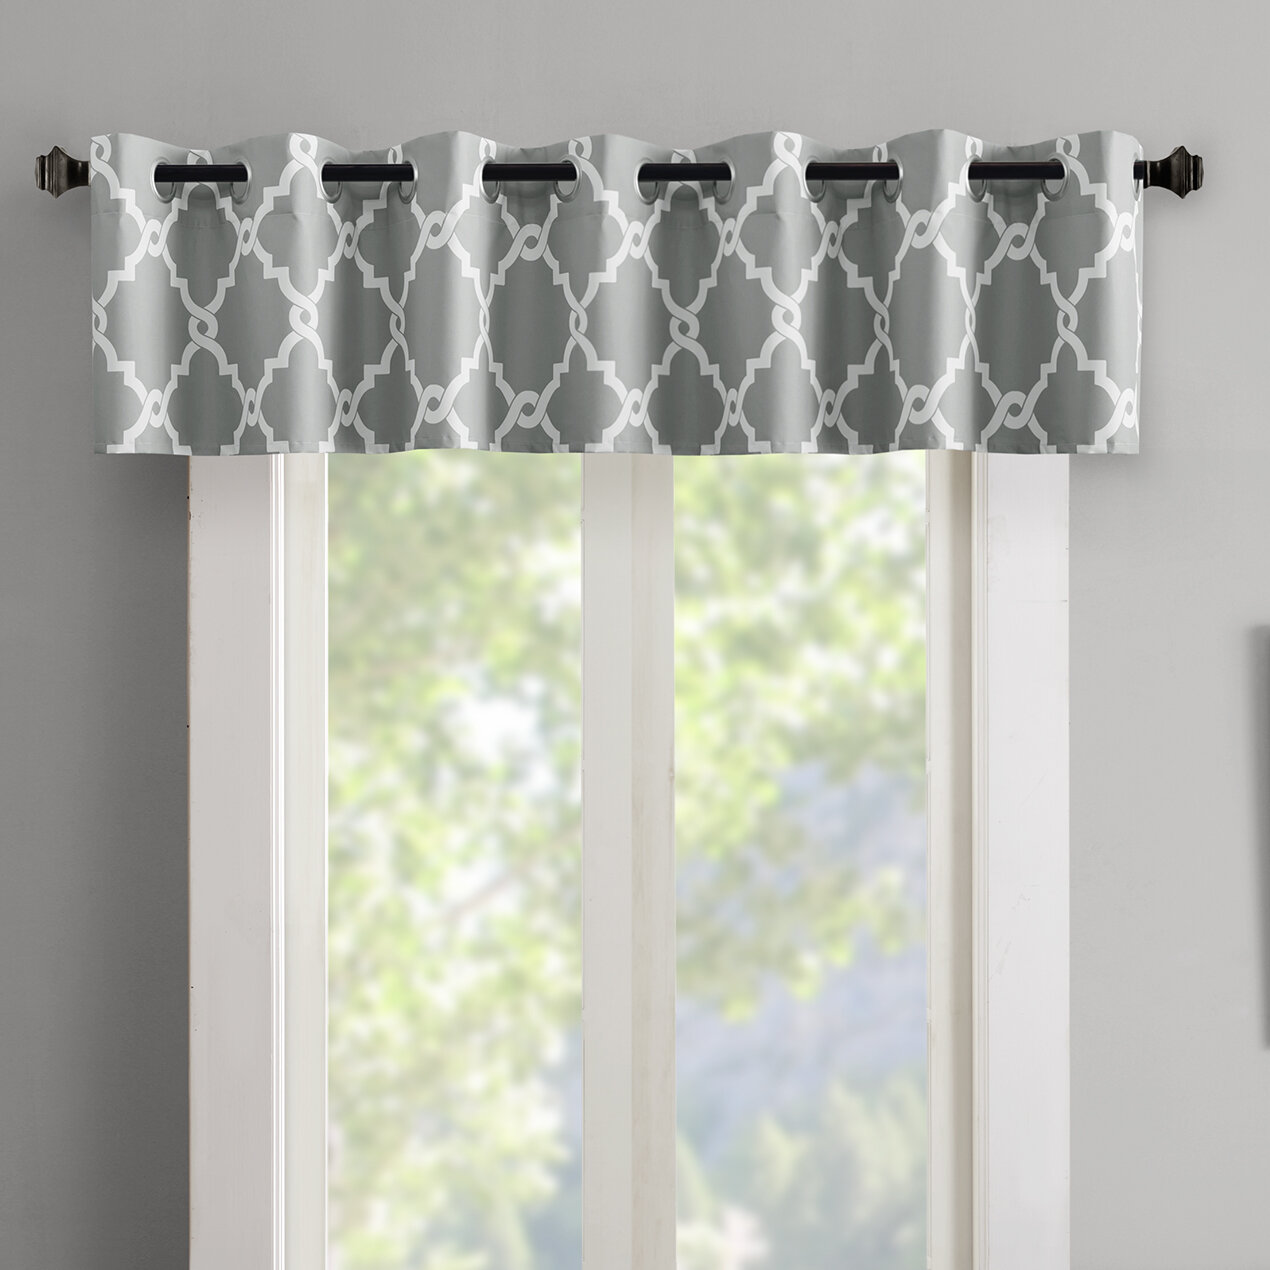 valances that great look hero in for styles nursery any room guides living best window windows valance